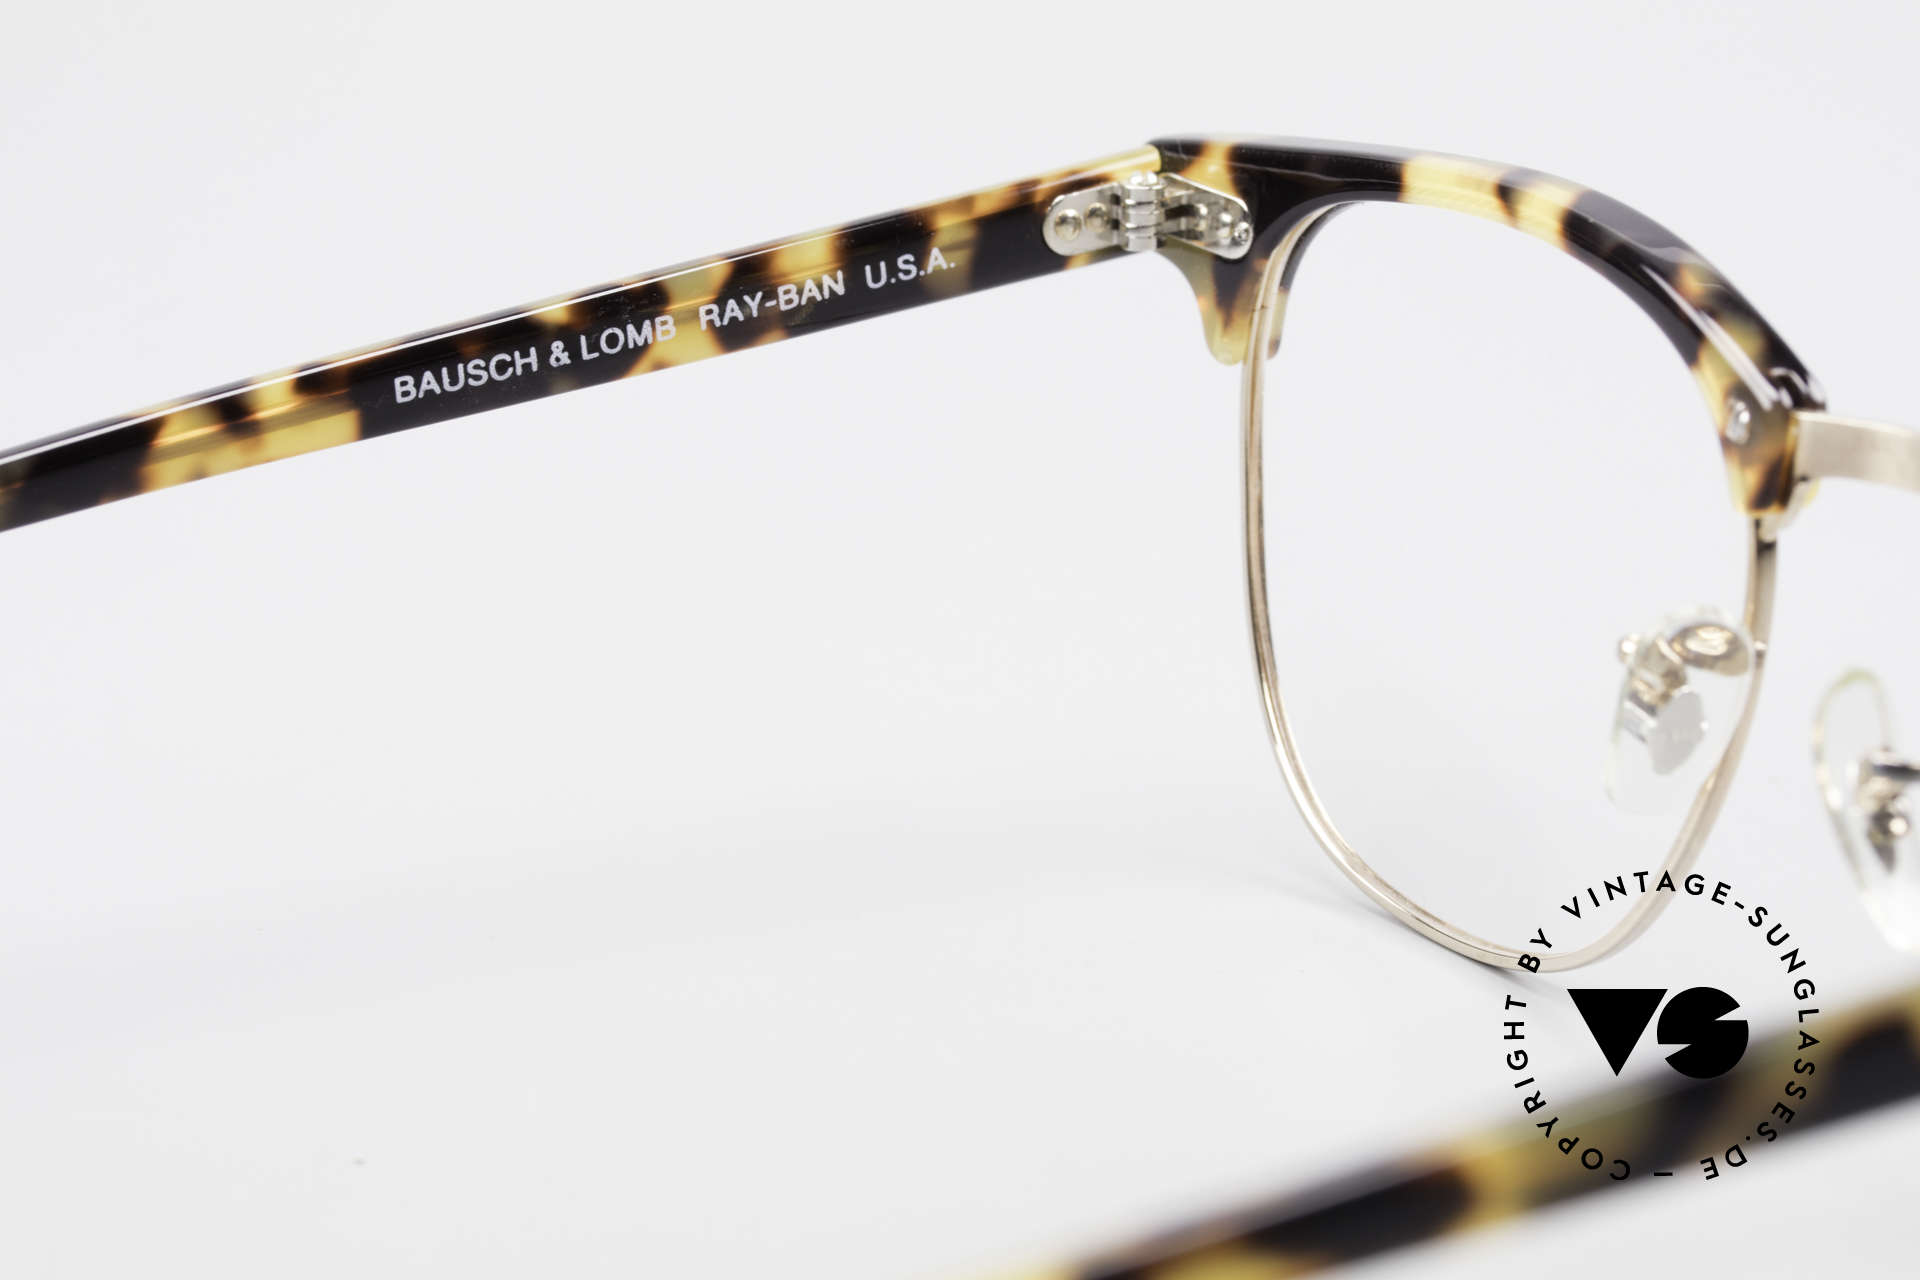 Ray Ban Clubmaster II Large Limited Edition USA B&L, high-end quality & with original Ray-Ban case, Made for Men